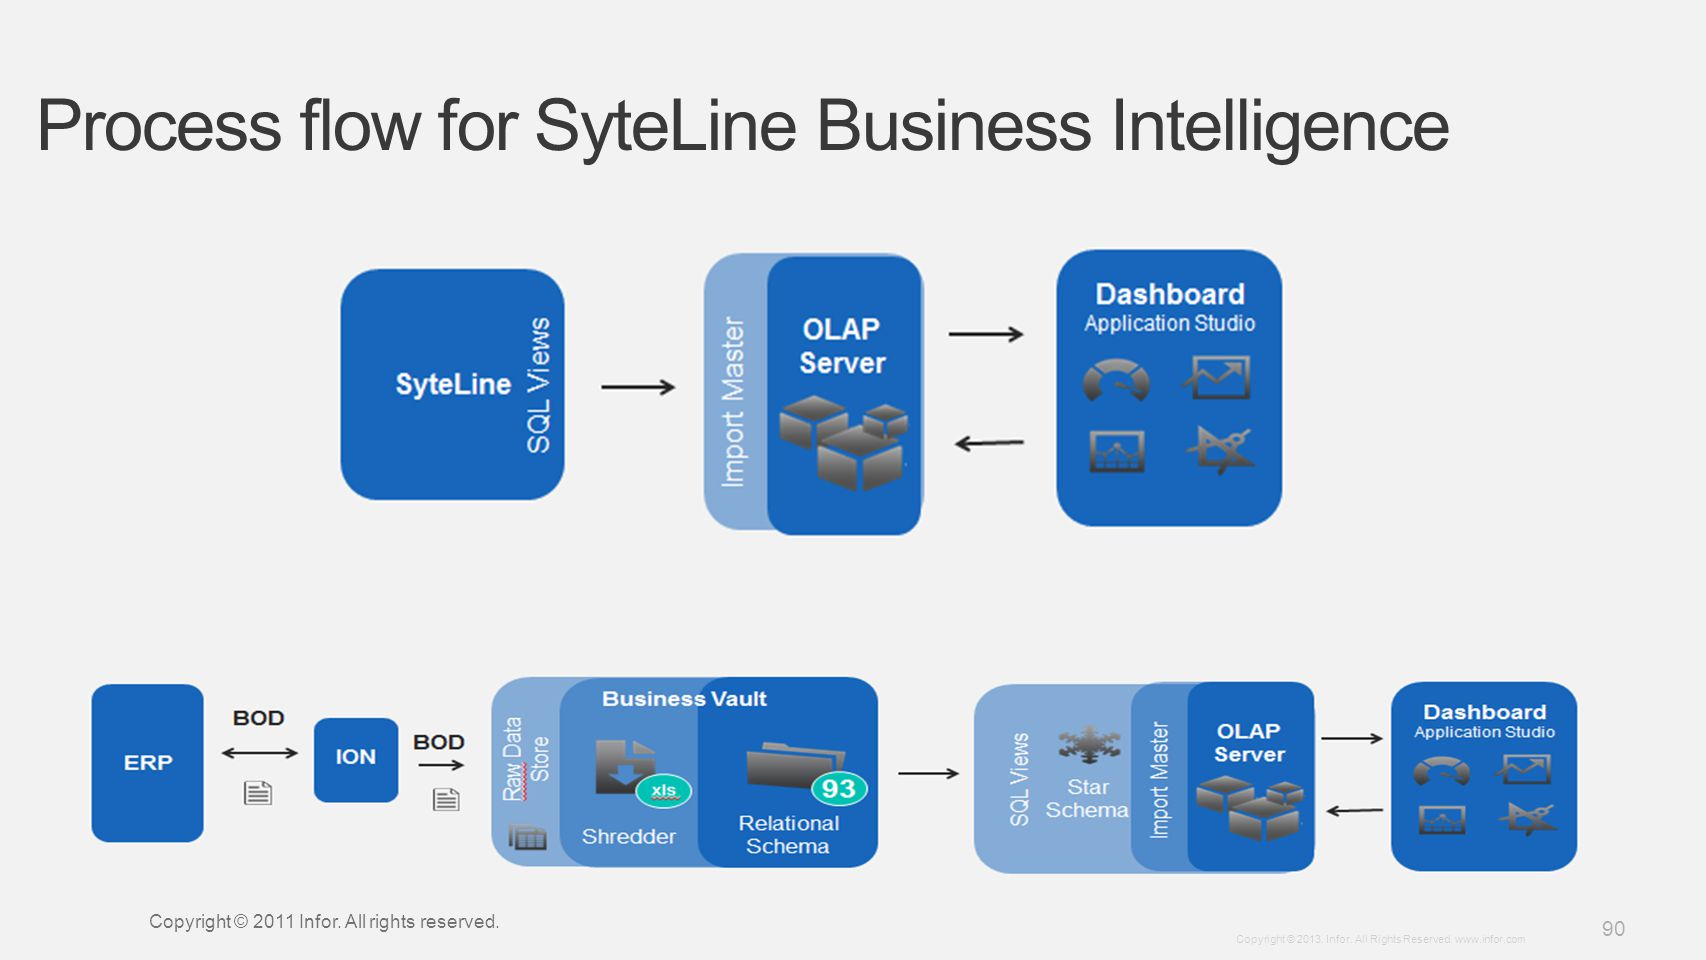 Process flow for SyteLine Business Intelligence